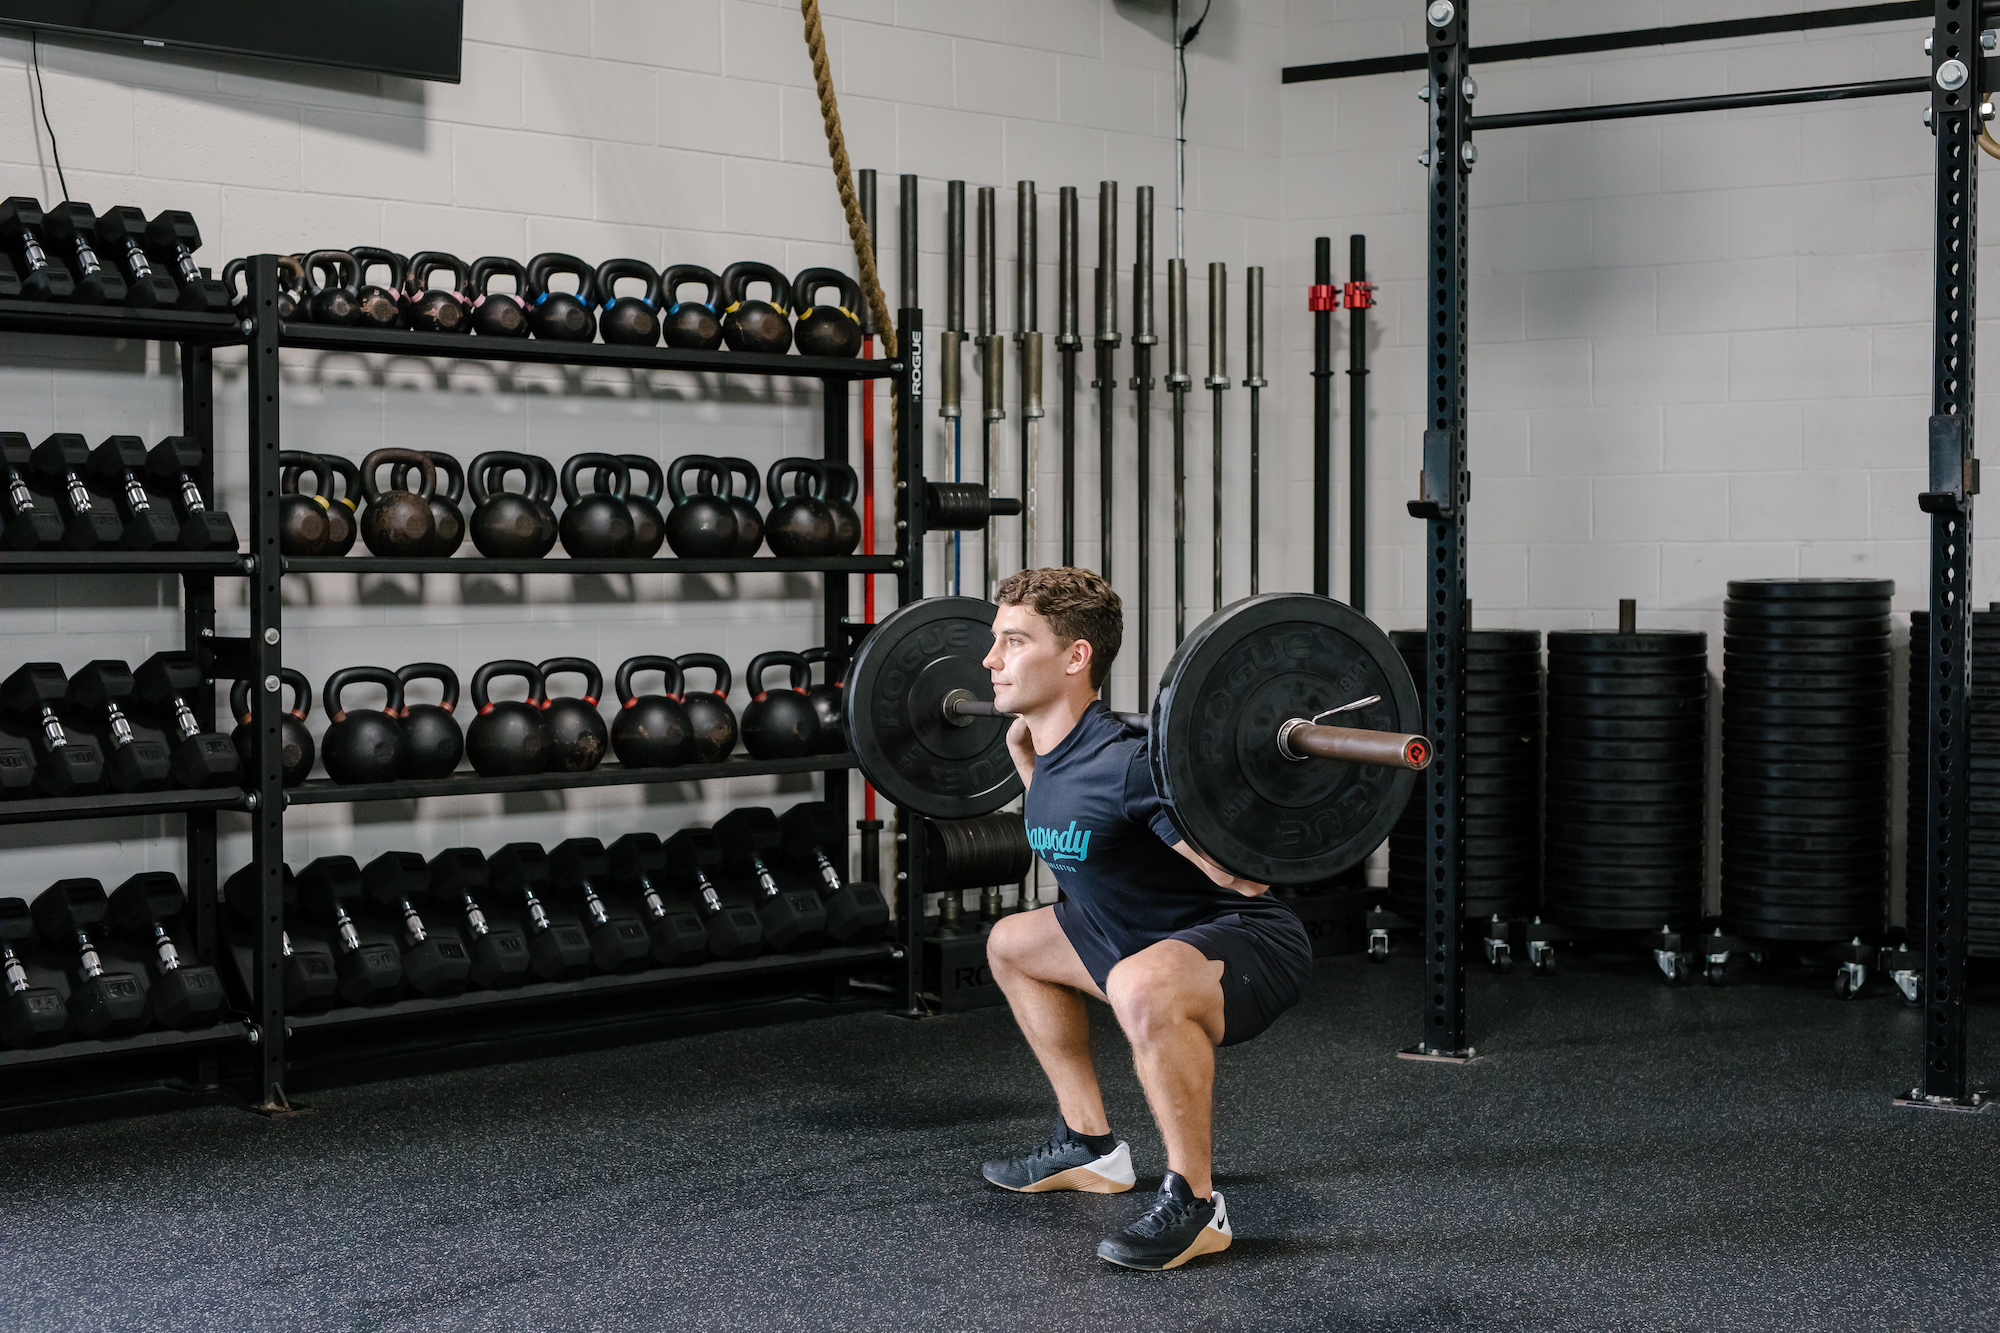 Points of Performance: The Back Squat